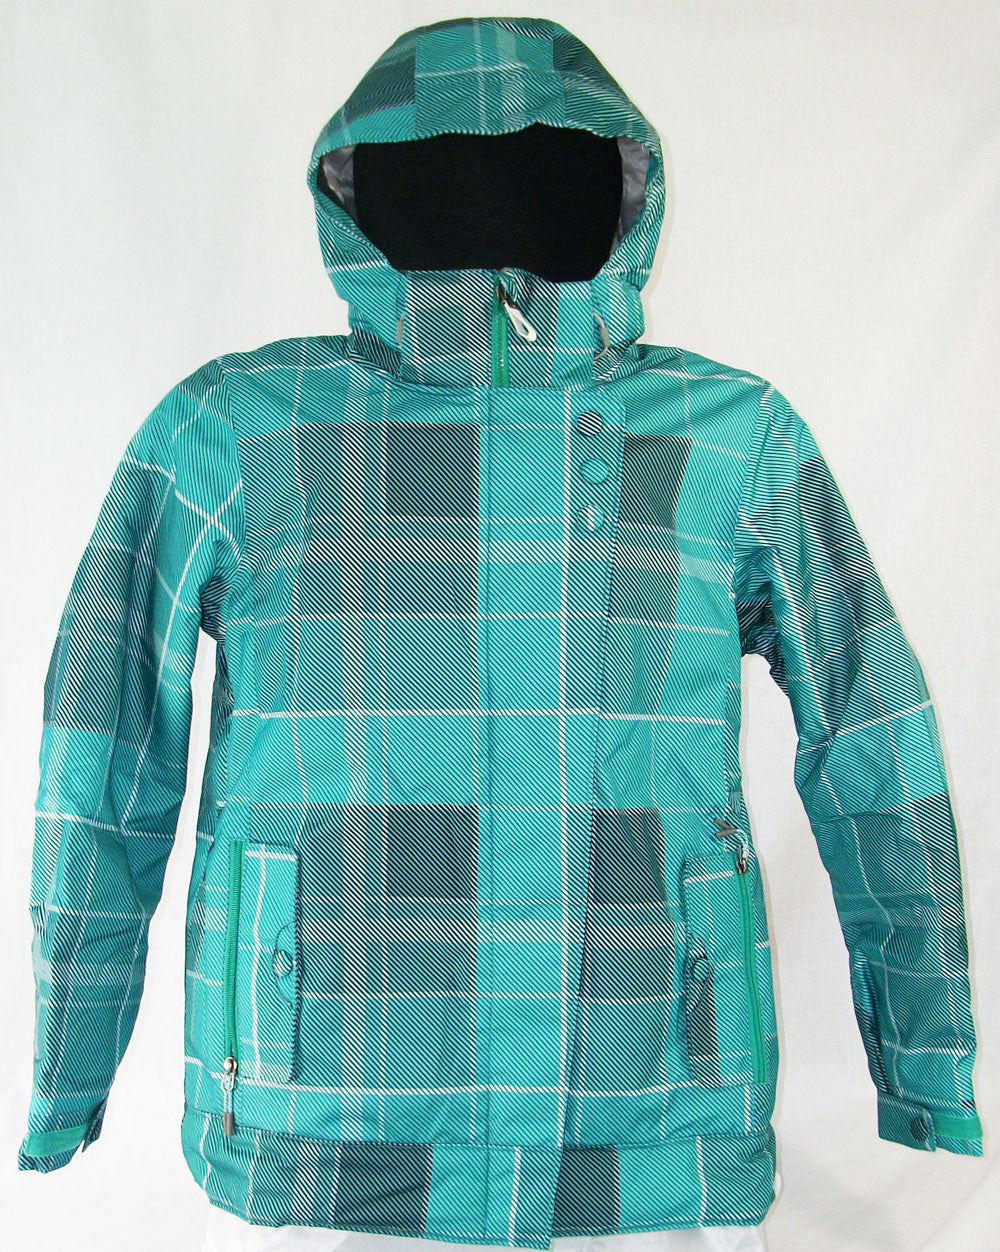 M3 Clare Womens Snowboard Ski Jacket Vivid Green Plaid Medium